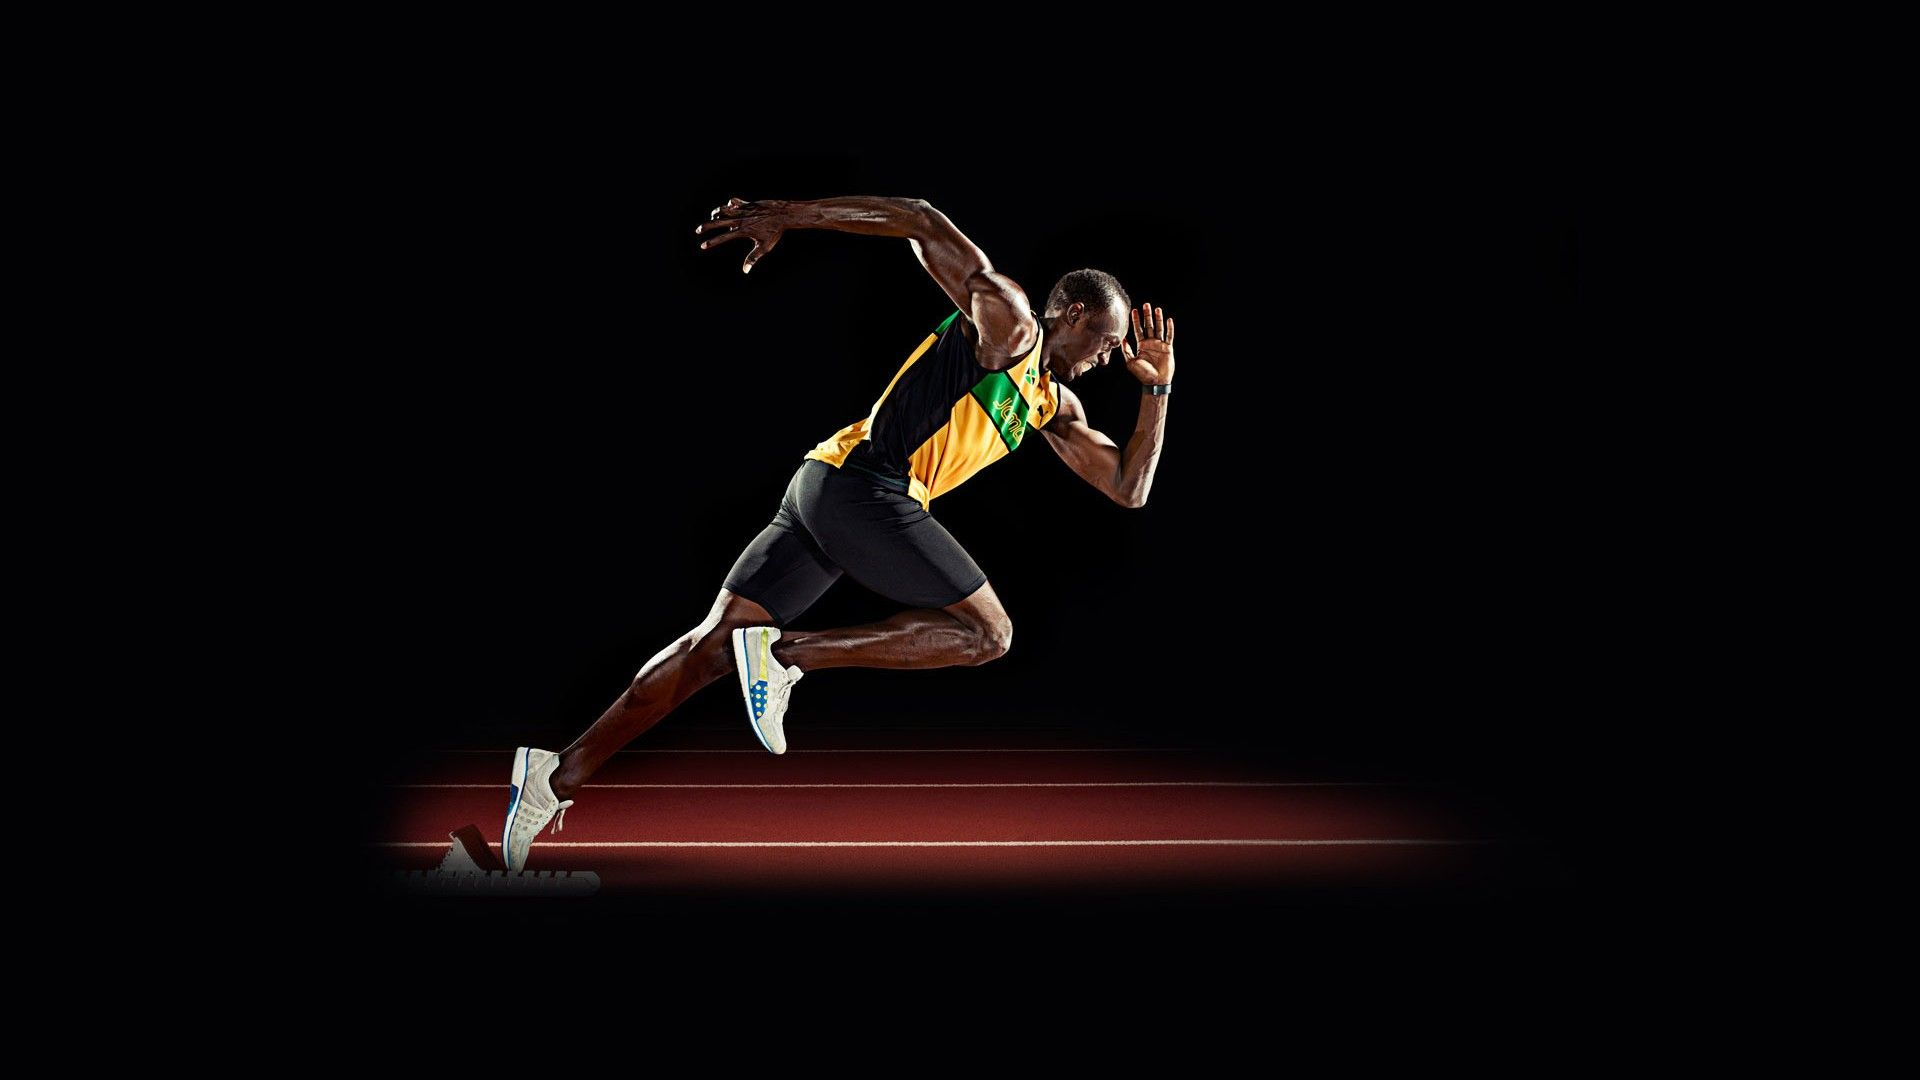 Usain Bolt, Running Pose